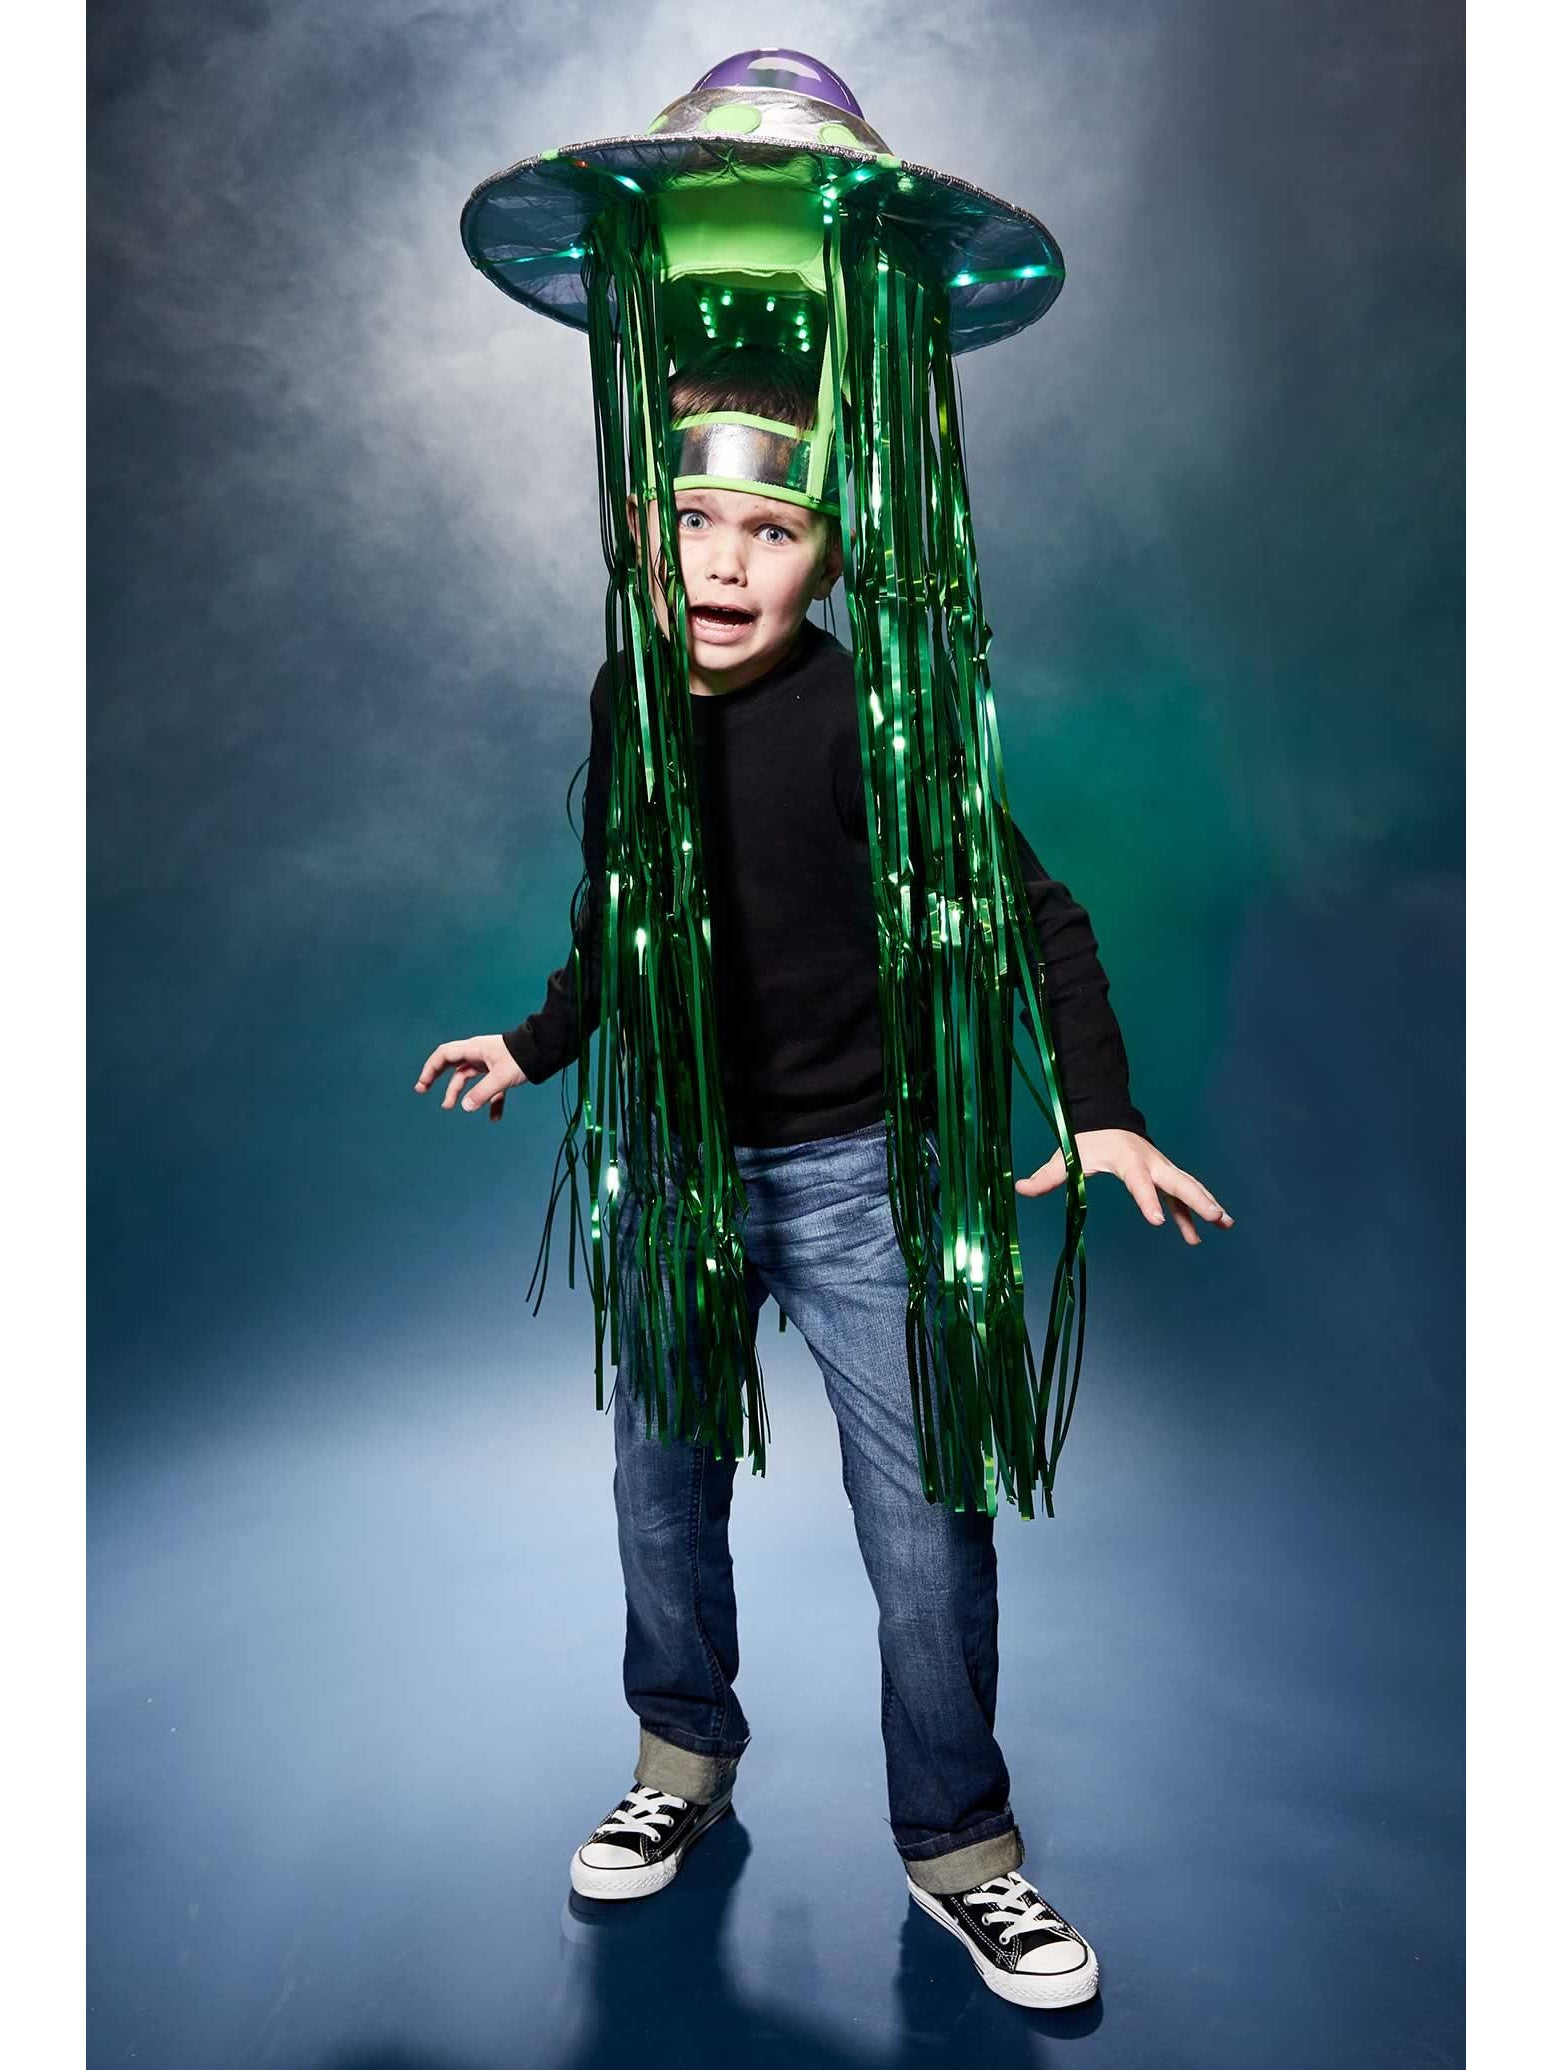 Light Up Flying Saucer Ufo Costume Chasing Fireflies